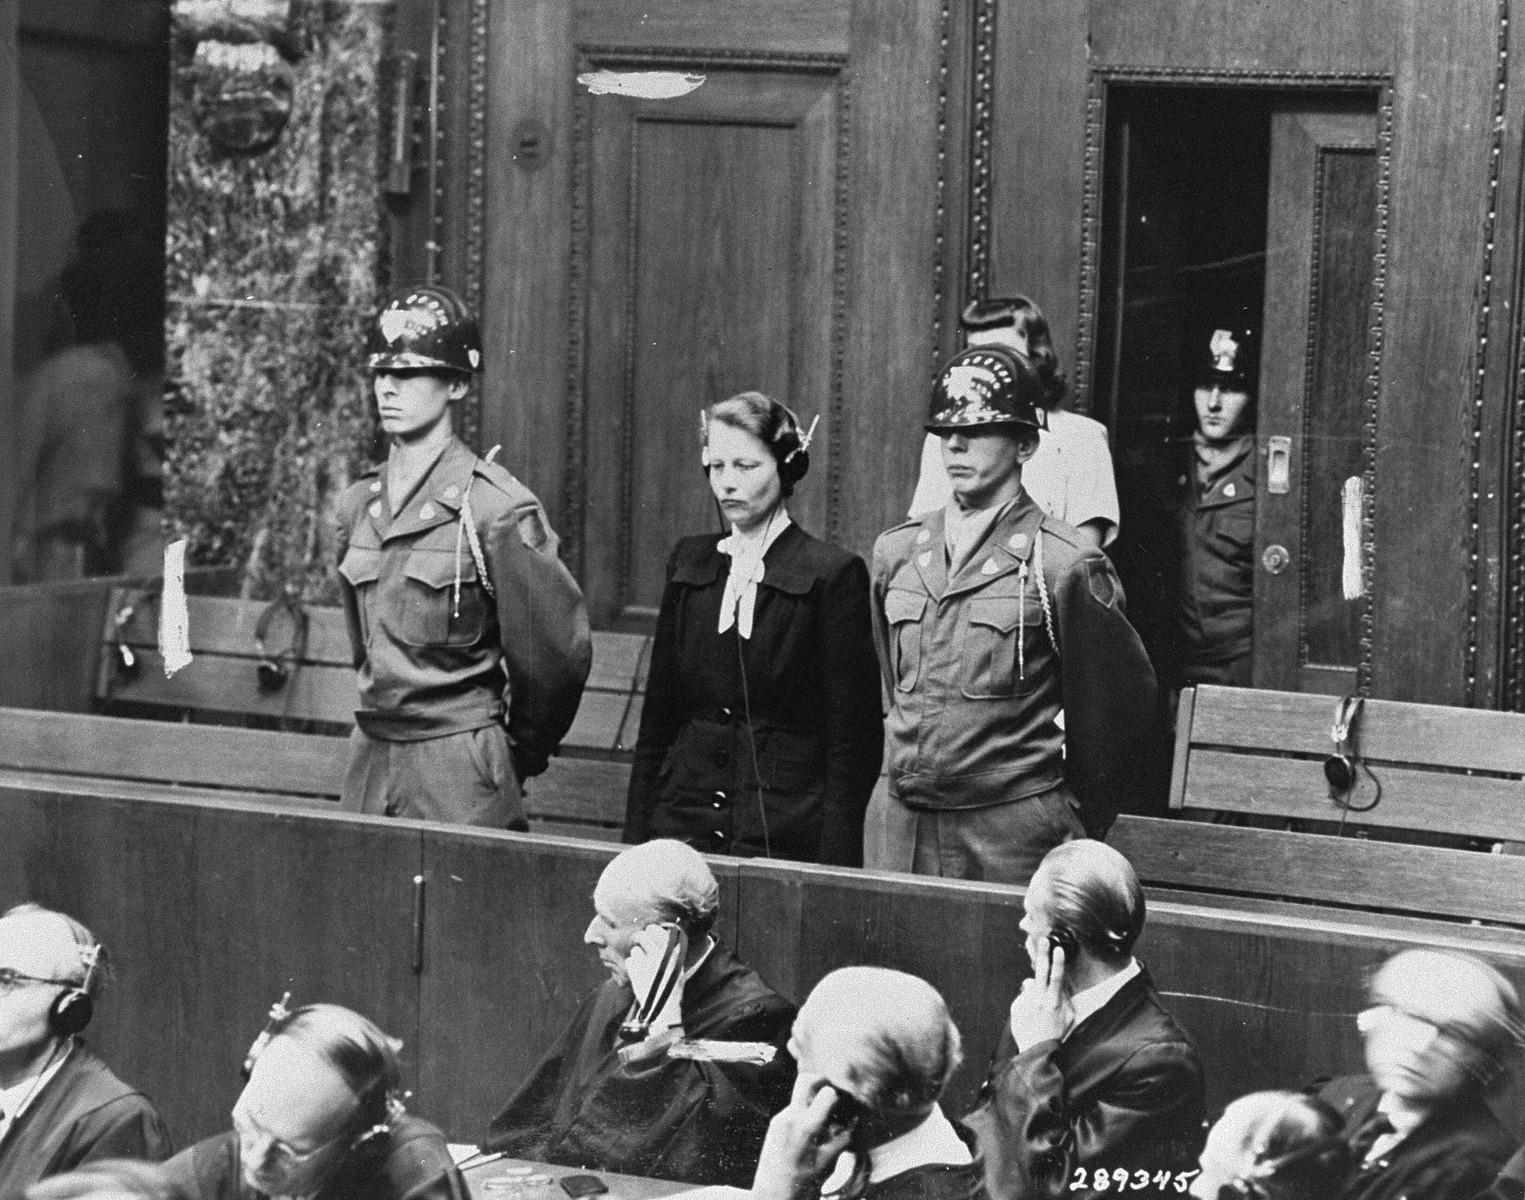 herta oberheuser oberheuser is sentenced to 20 years imprisonment at the doctors trial